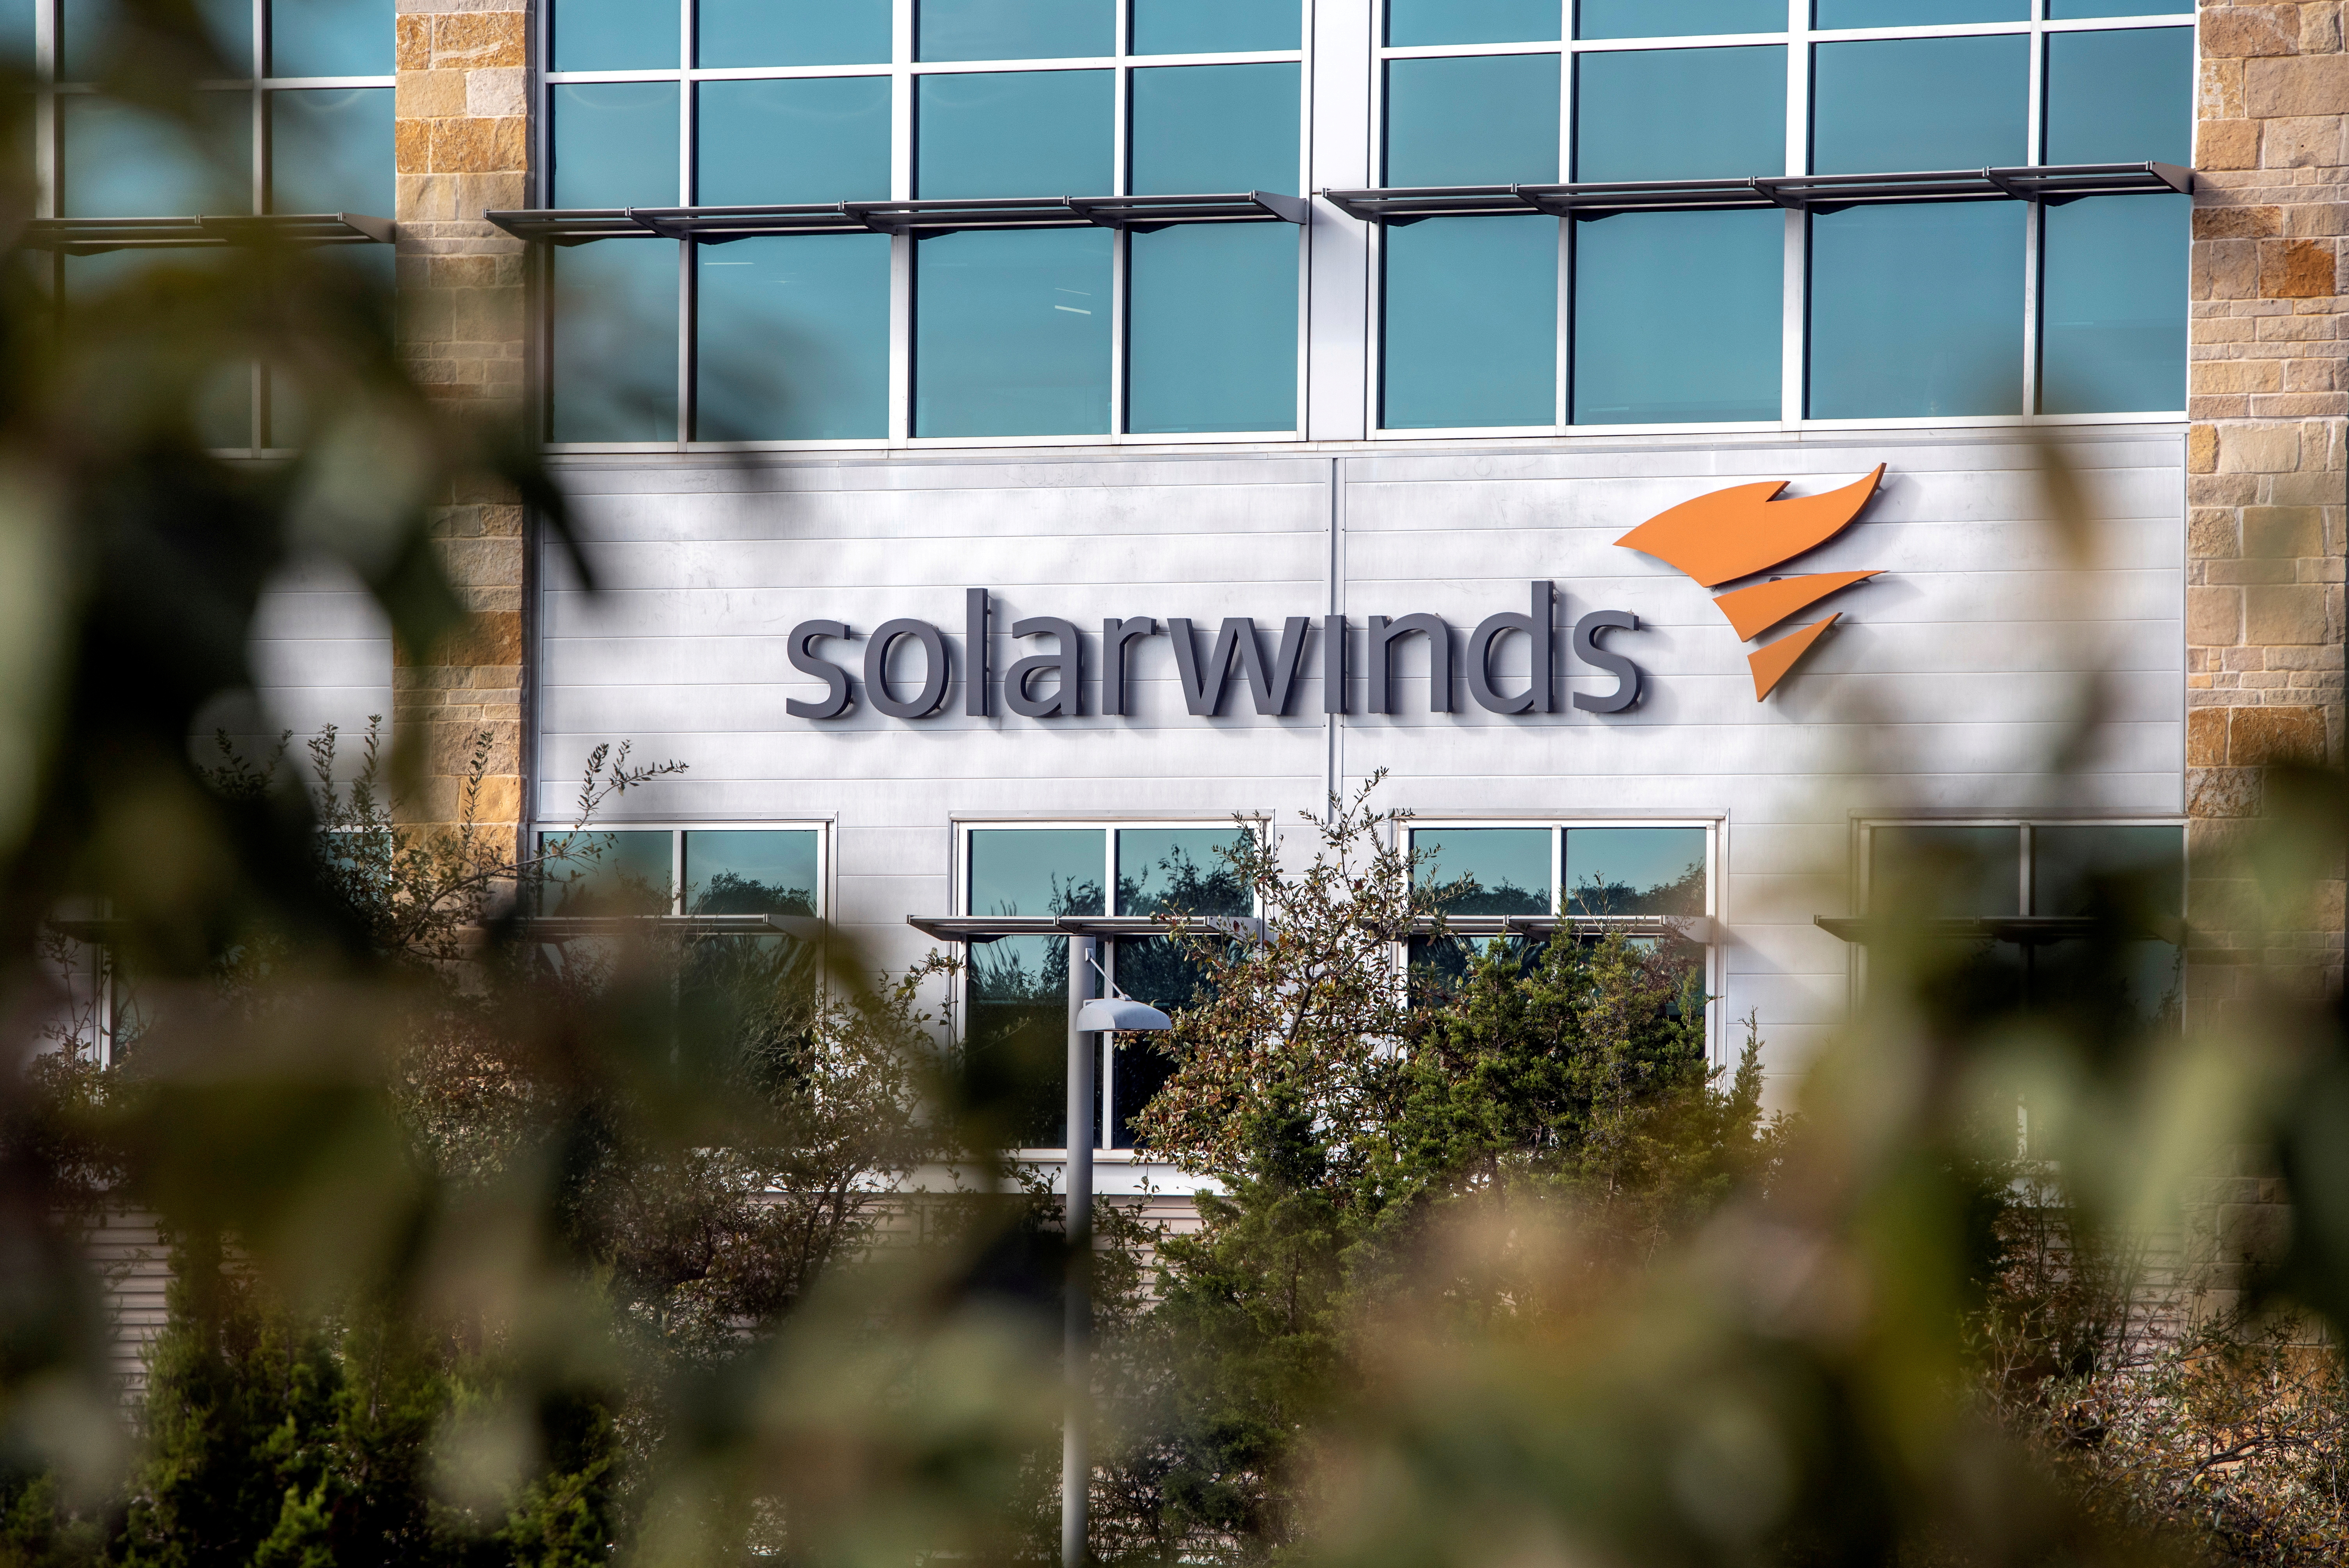 The SolarWinds logo is seen outside its headquarters in Austin, Texas, U.S., December 18, 2020. REUTERS/Sergio Flores/File Photo/File Photo